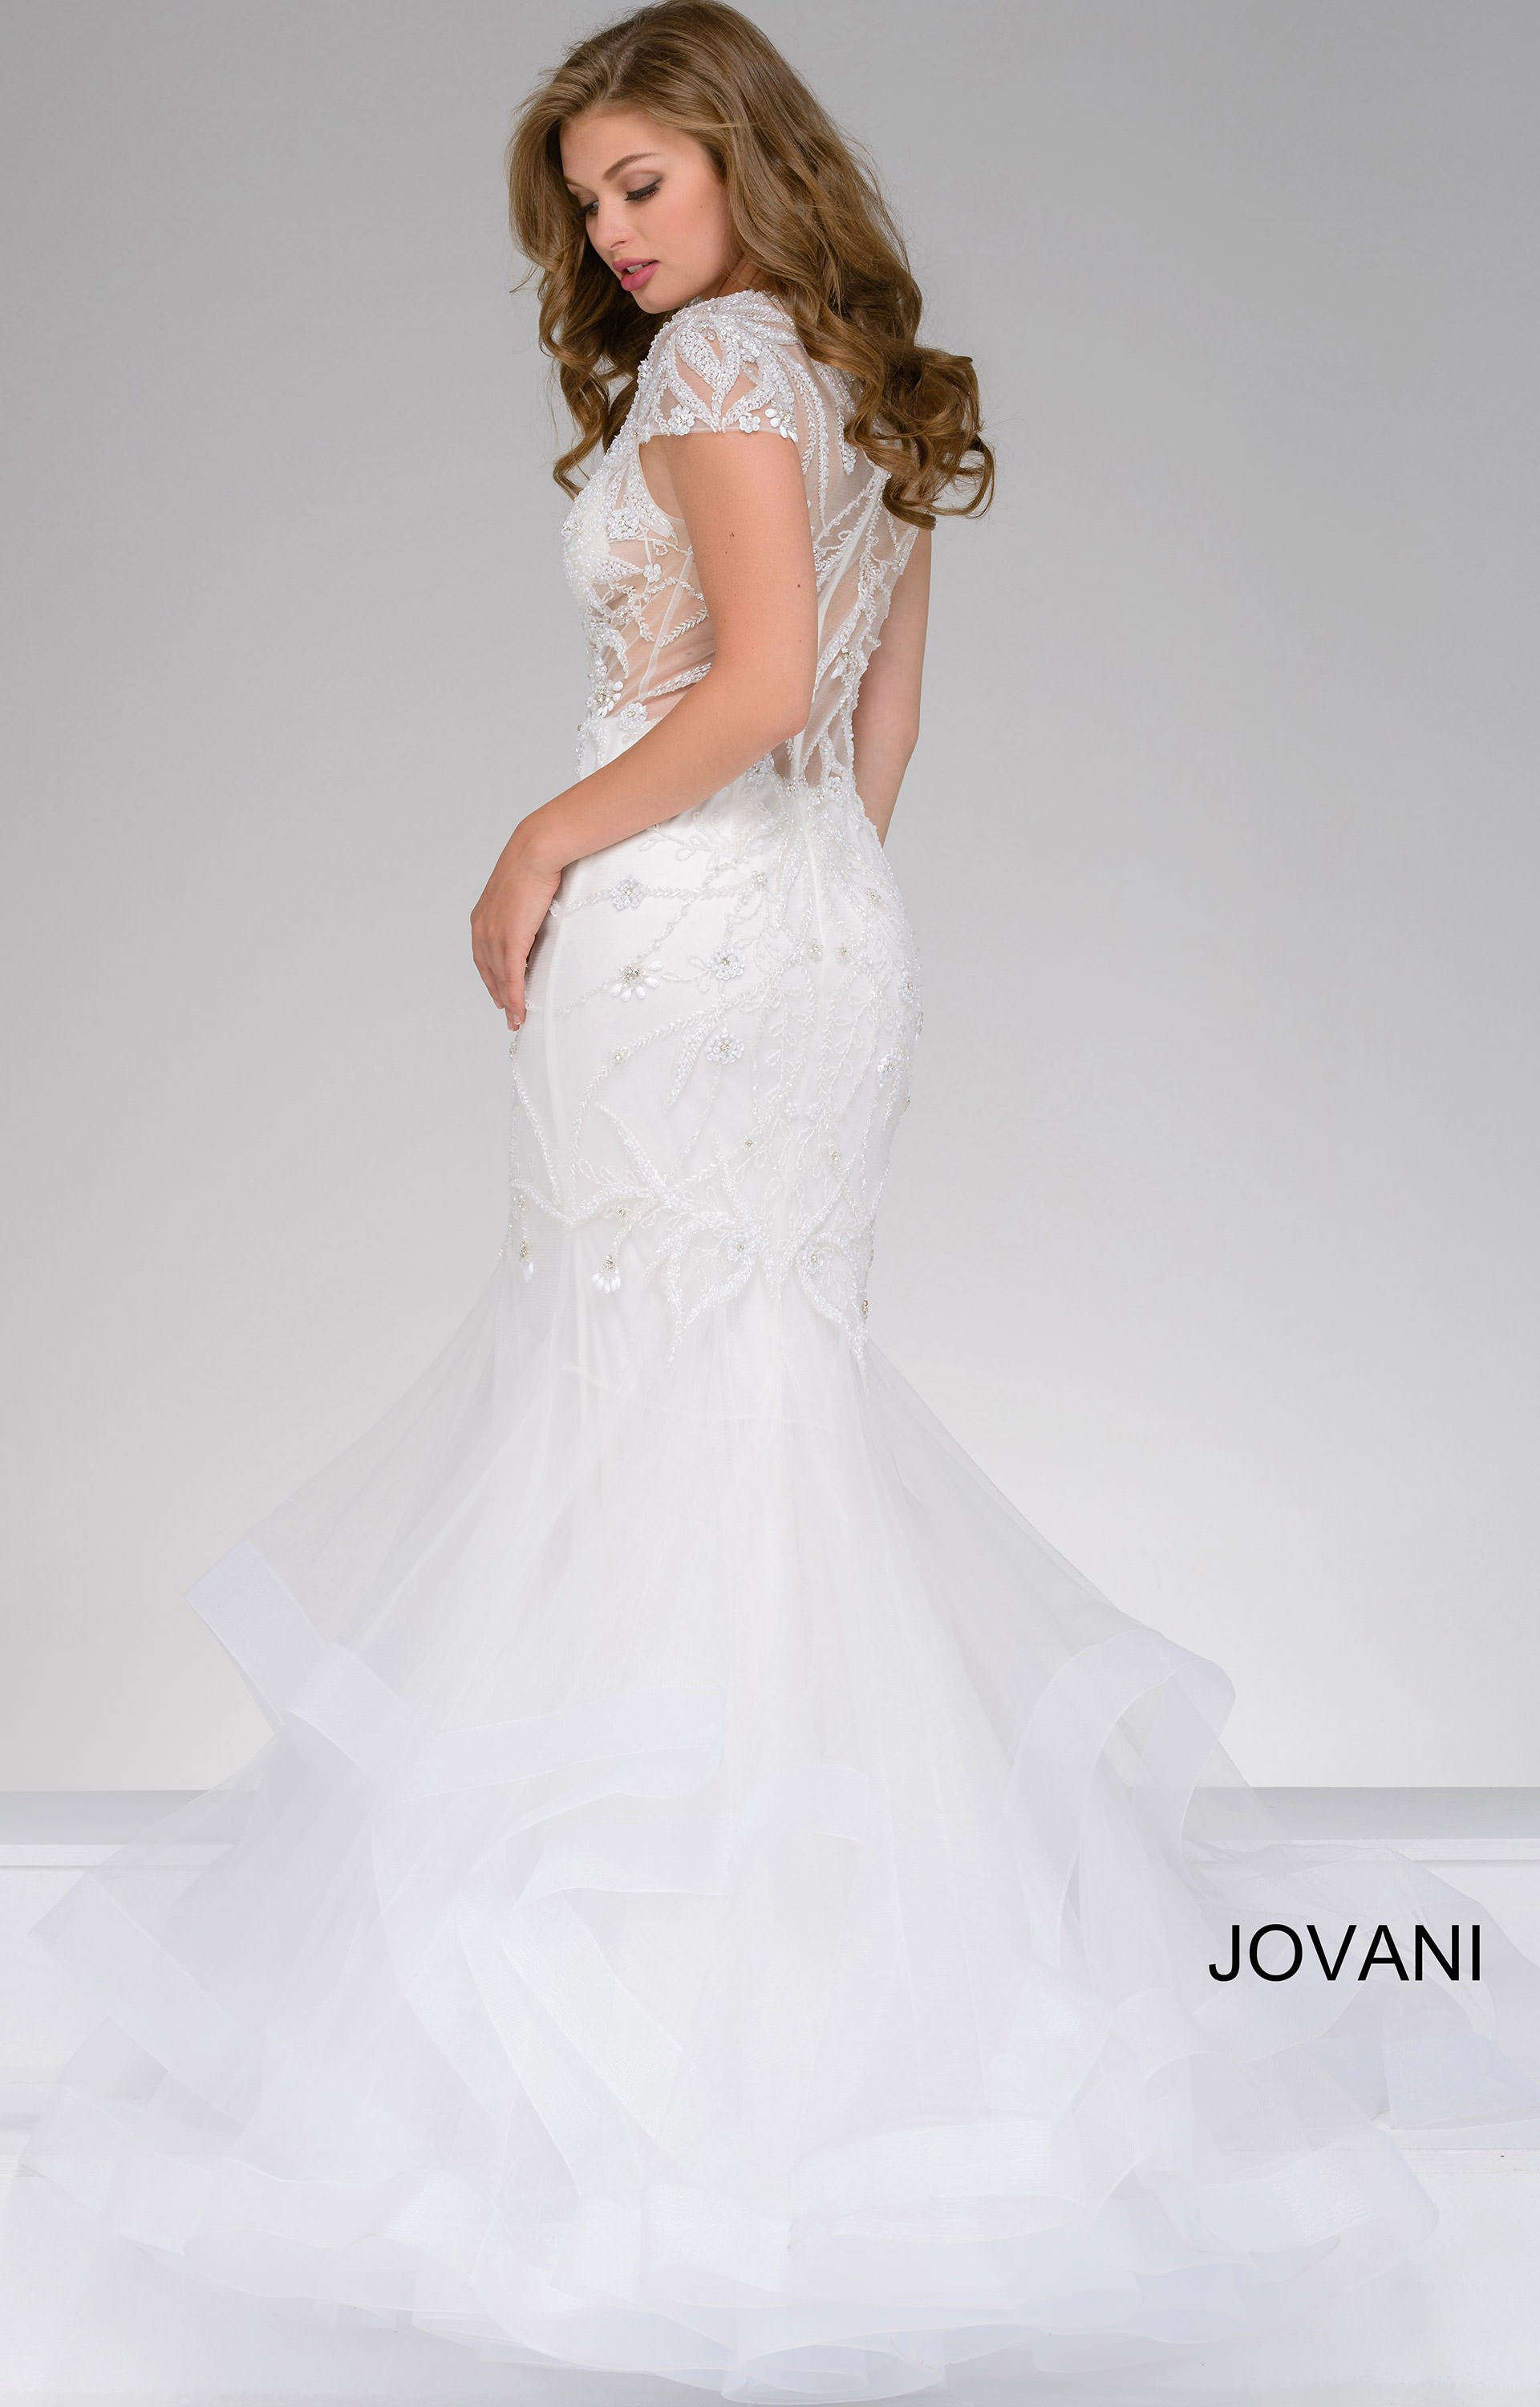 Jovani 50220 Capped Sleeve Sheer And Beaded Mermaid